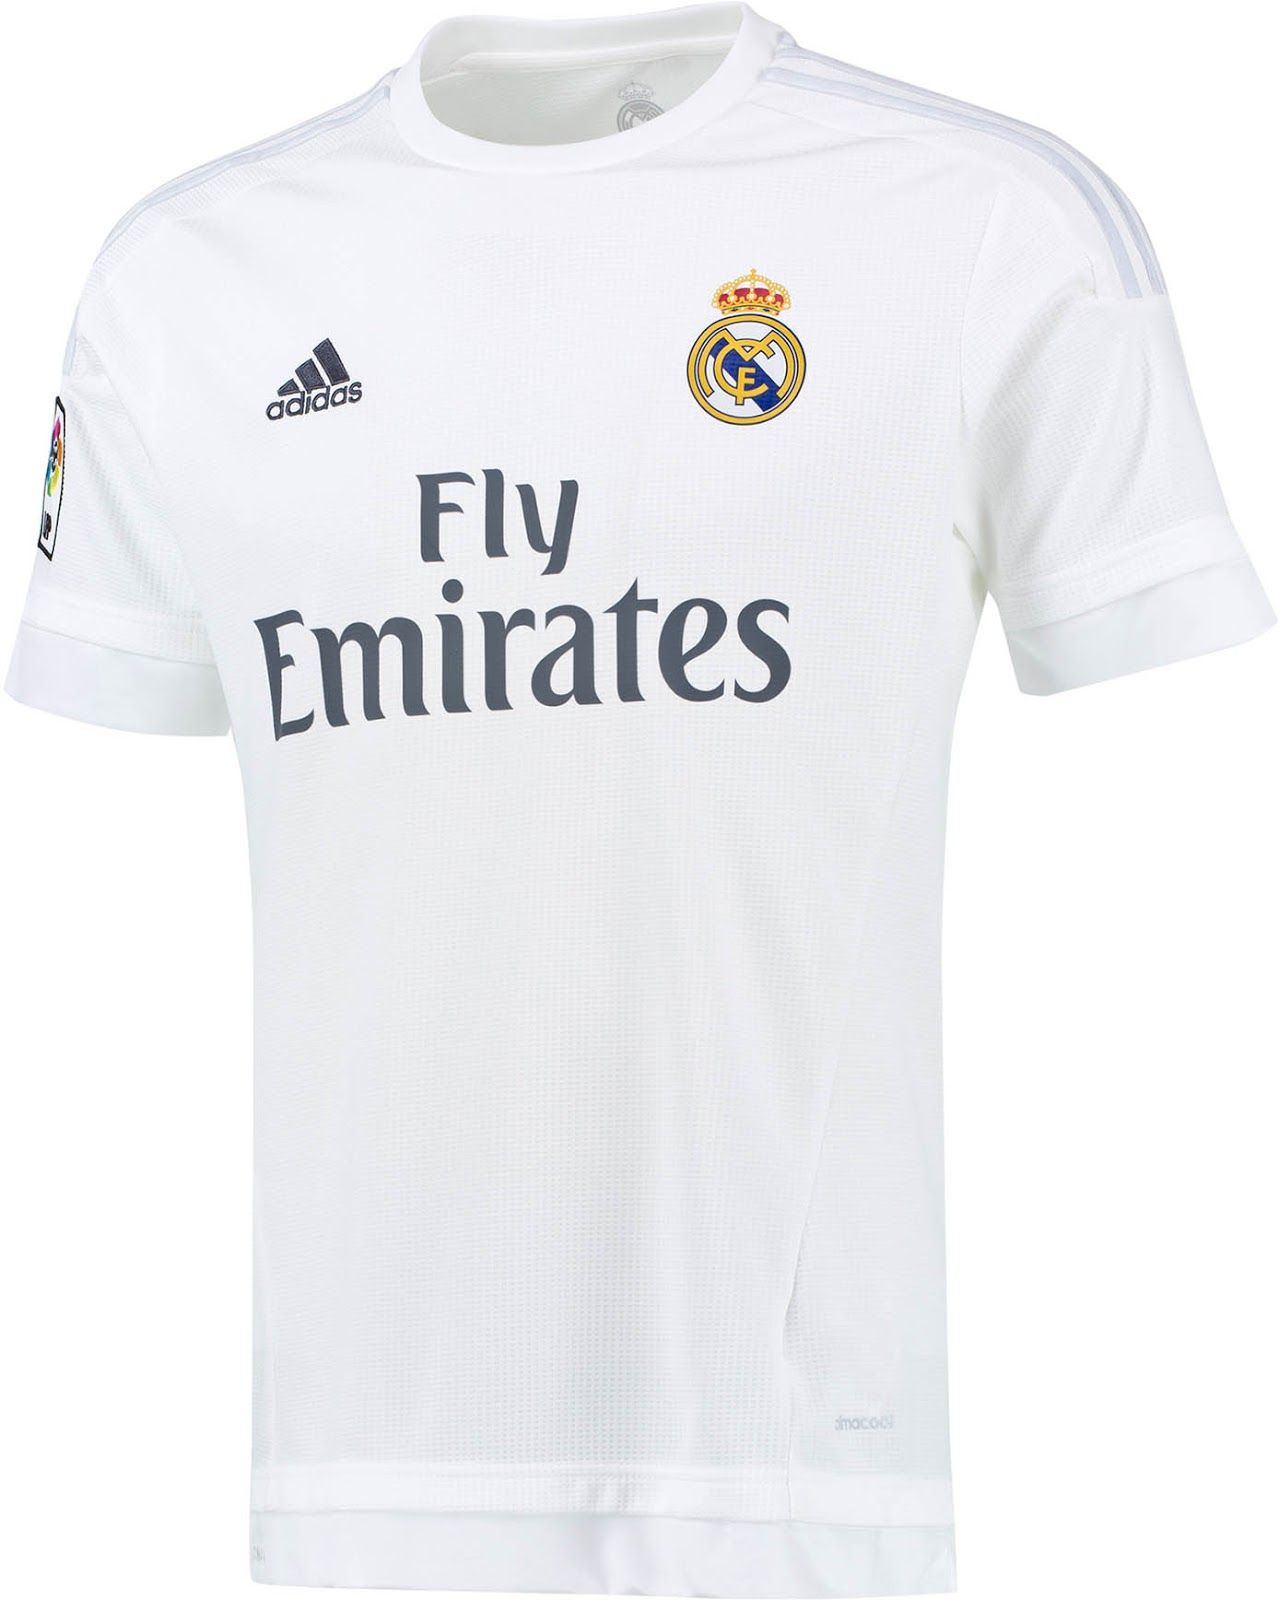 887512777 ADIDAS S12659 Real Madrid YOUTH-KIDS 11-12 Yrs Football Soccer Home ...